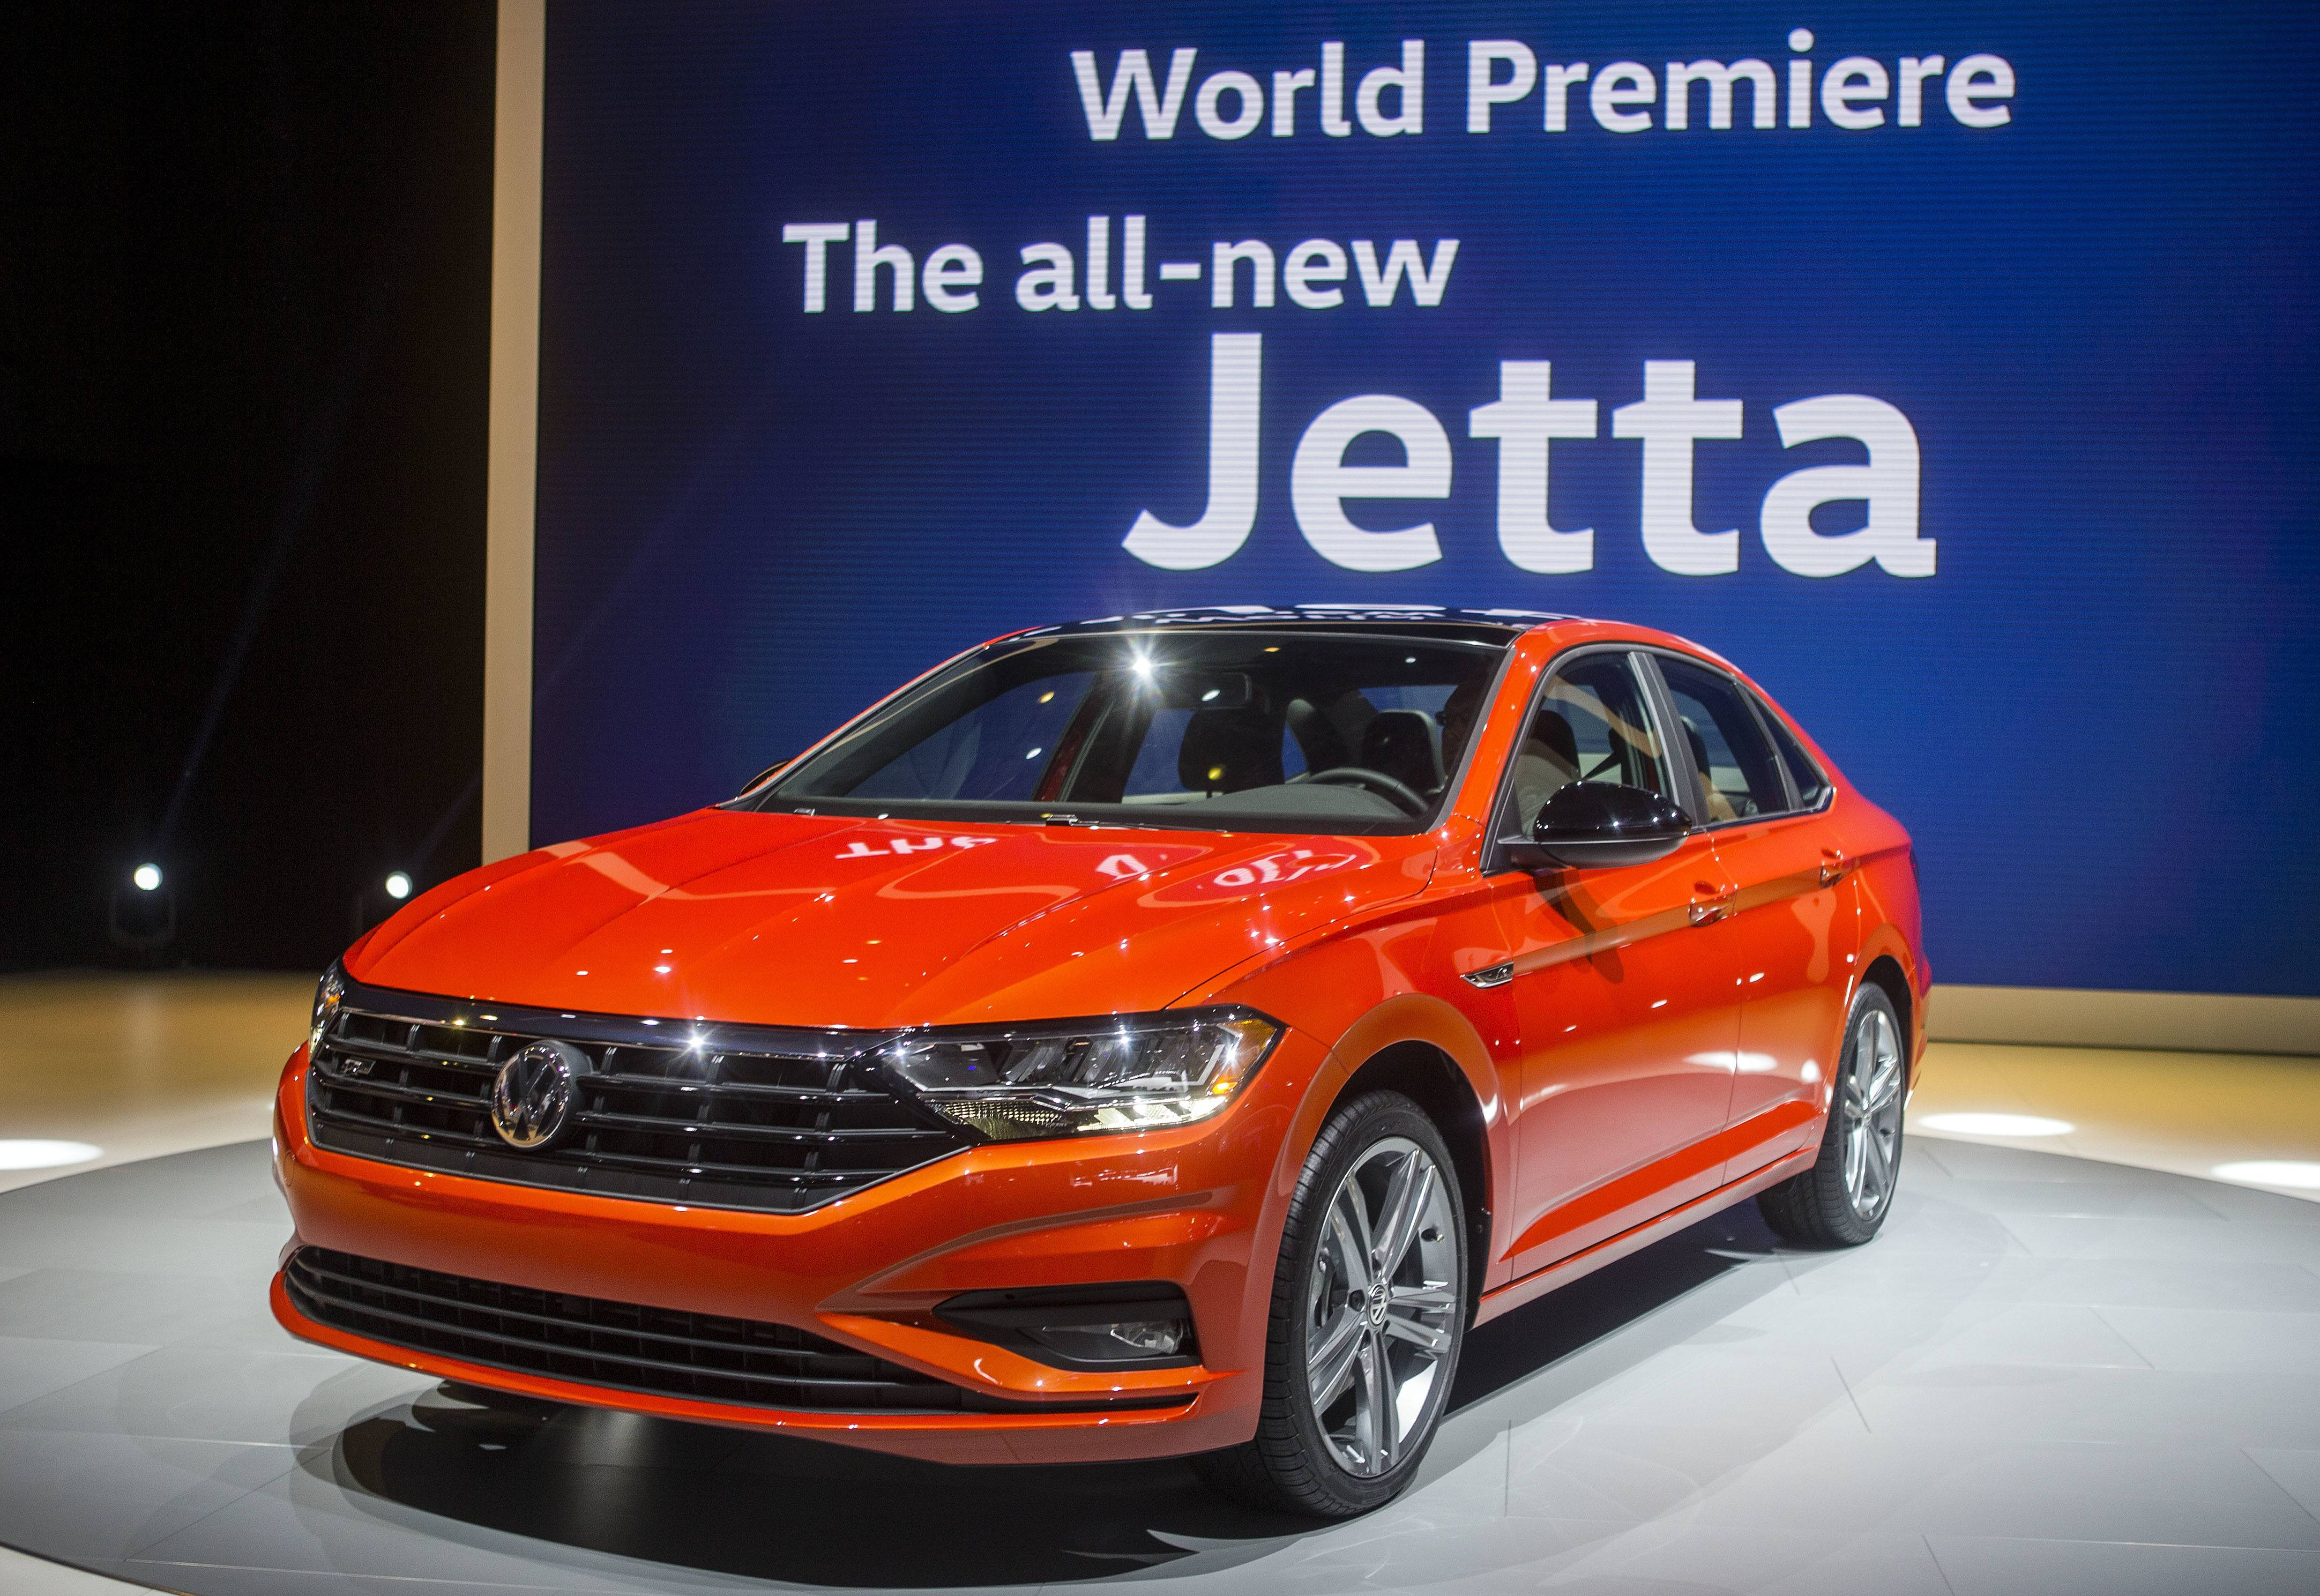 The new Volkswagen Jetta is presented at the North American International Auto Show, which came to a close last week in Detroit.